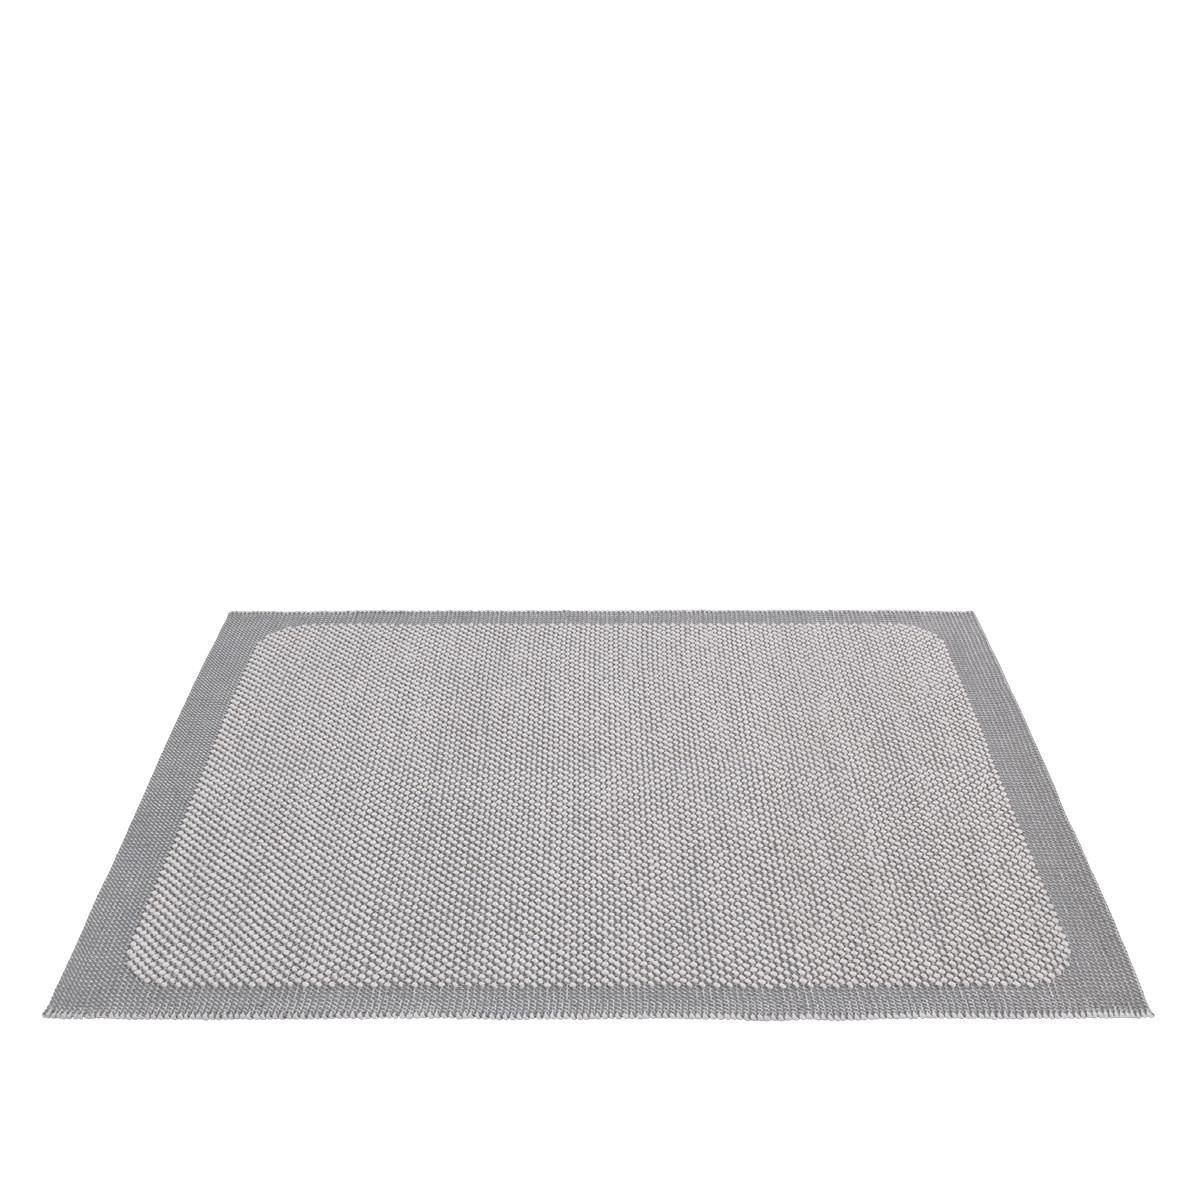 Pebble Rug. Light Grey 200 x 300